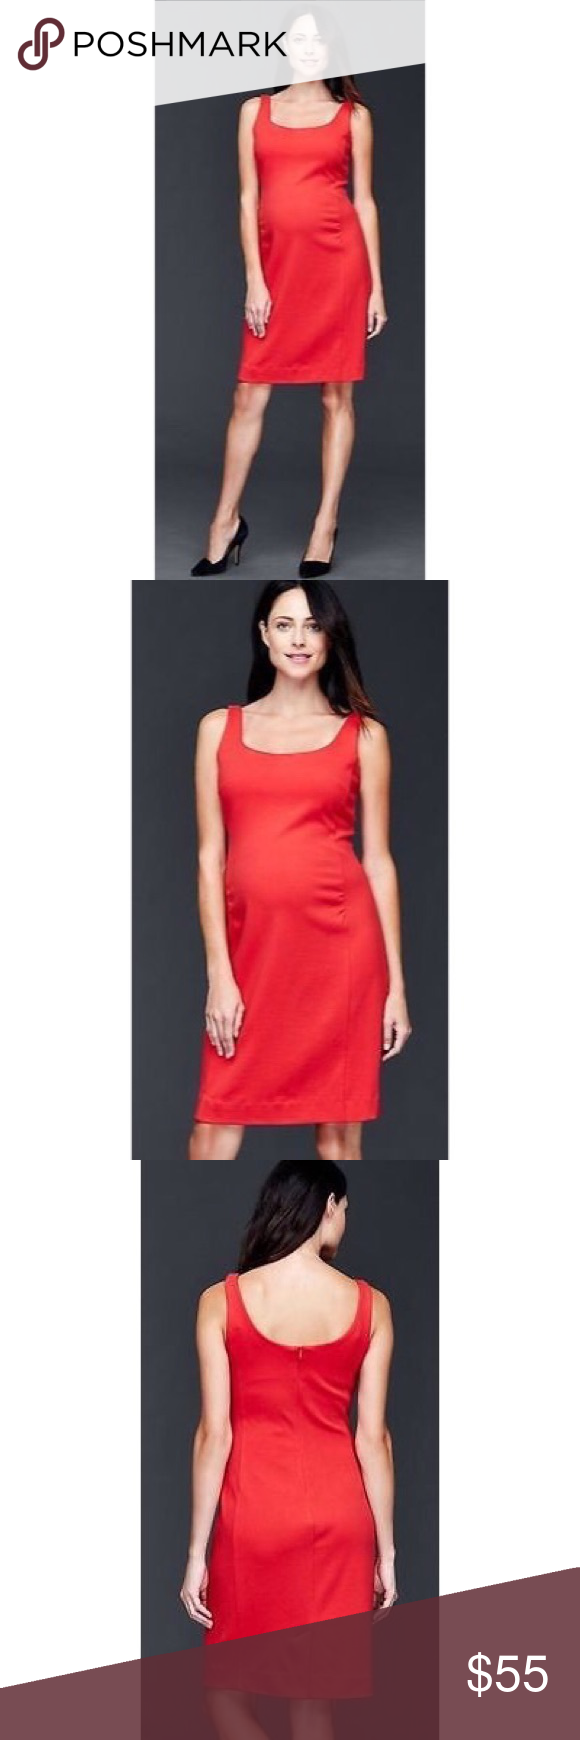 Nwt gap maternity dress nwt maternity dresses and red color nwt gap maternity dress nwt ombrellifo Image collections